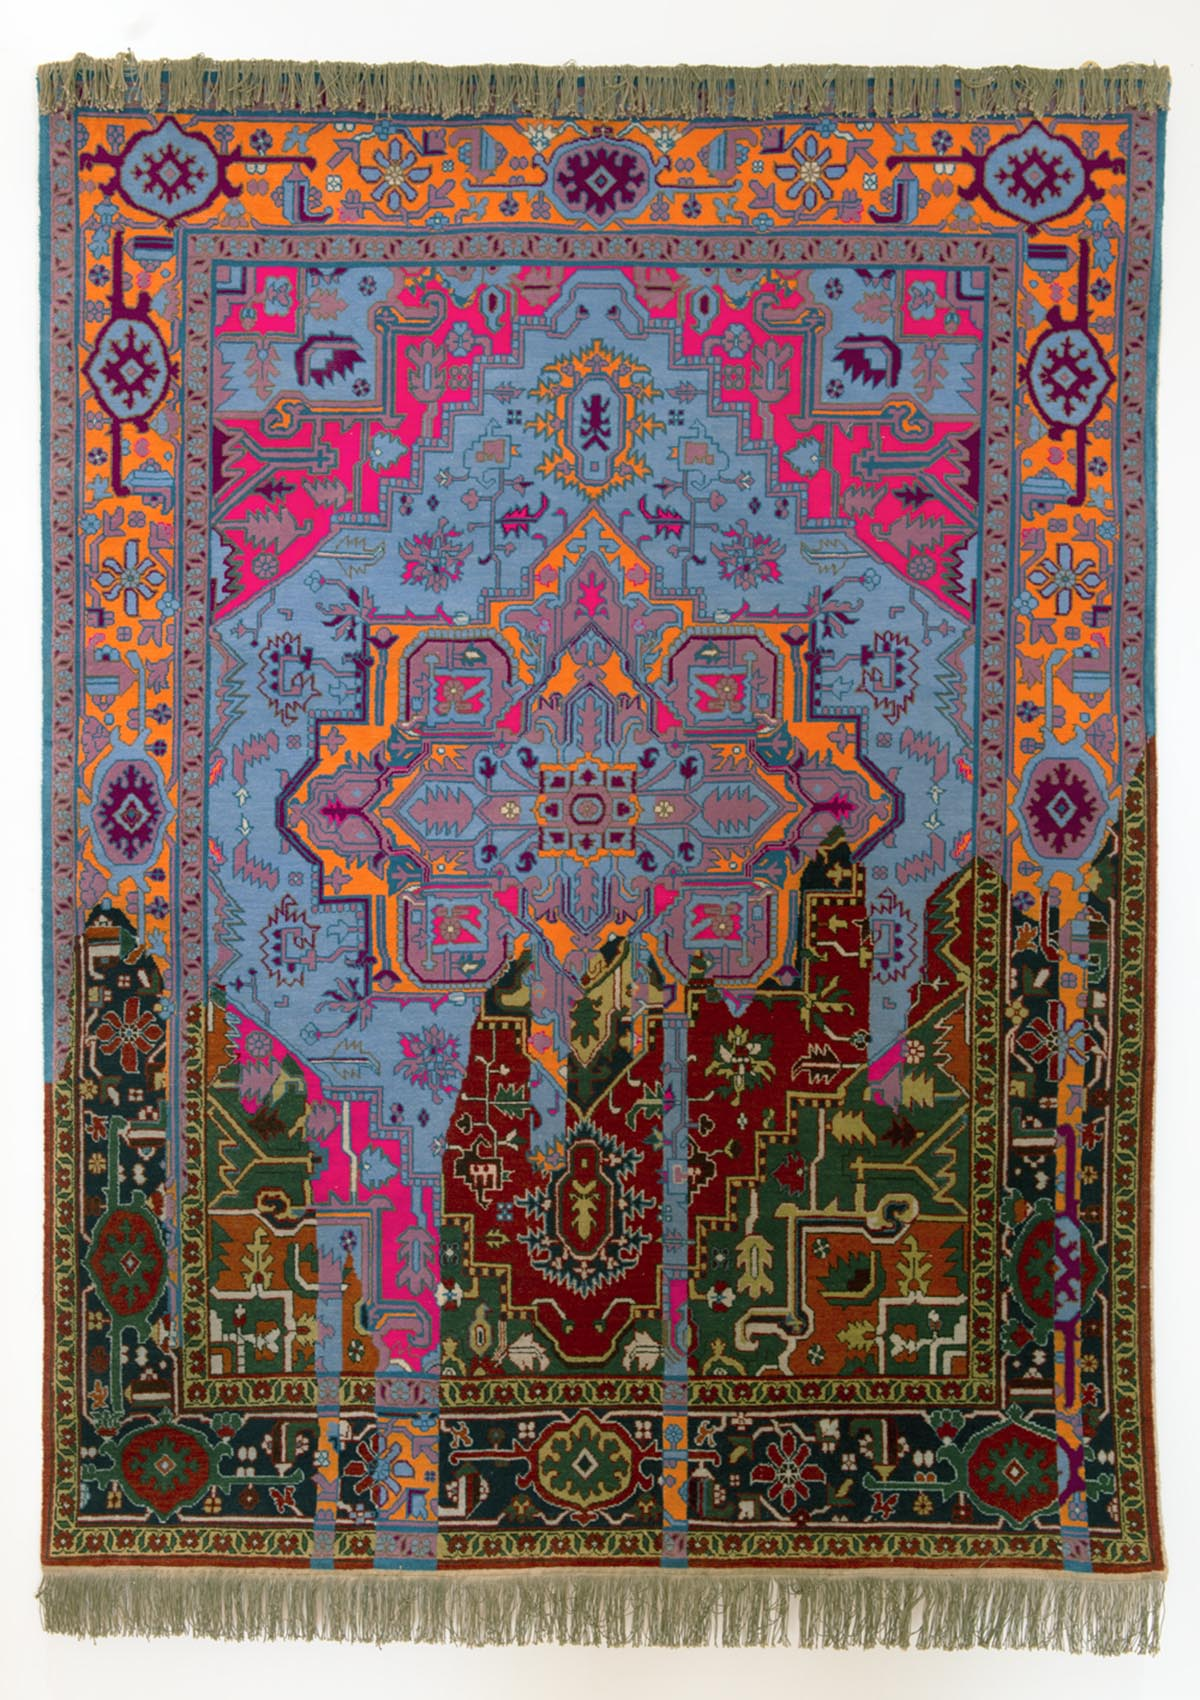 Faig Ahmed's modern interpretations of traditional carpet design -01